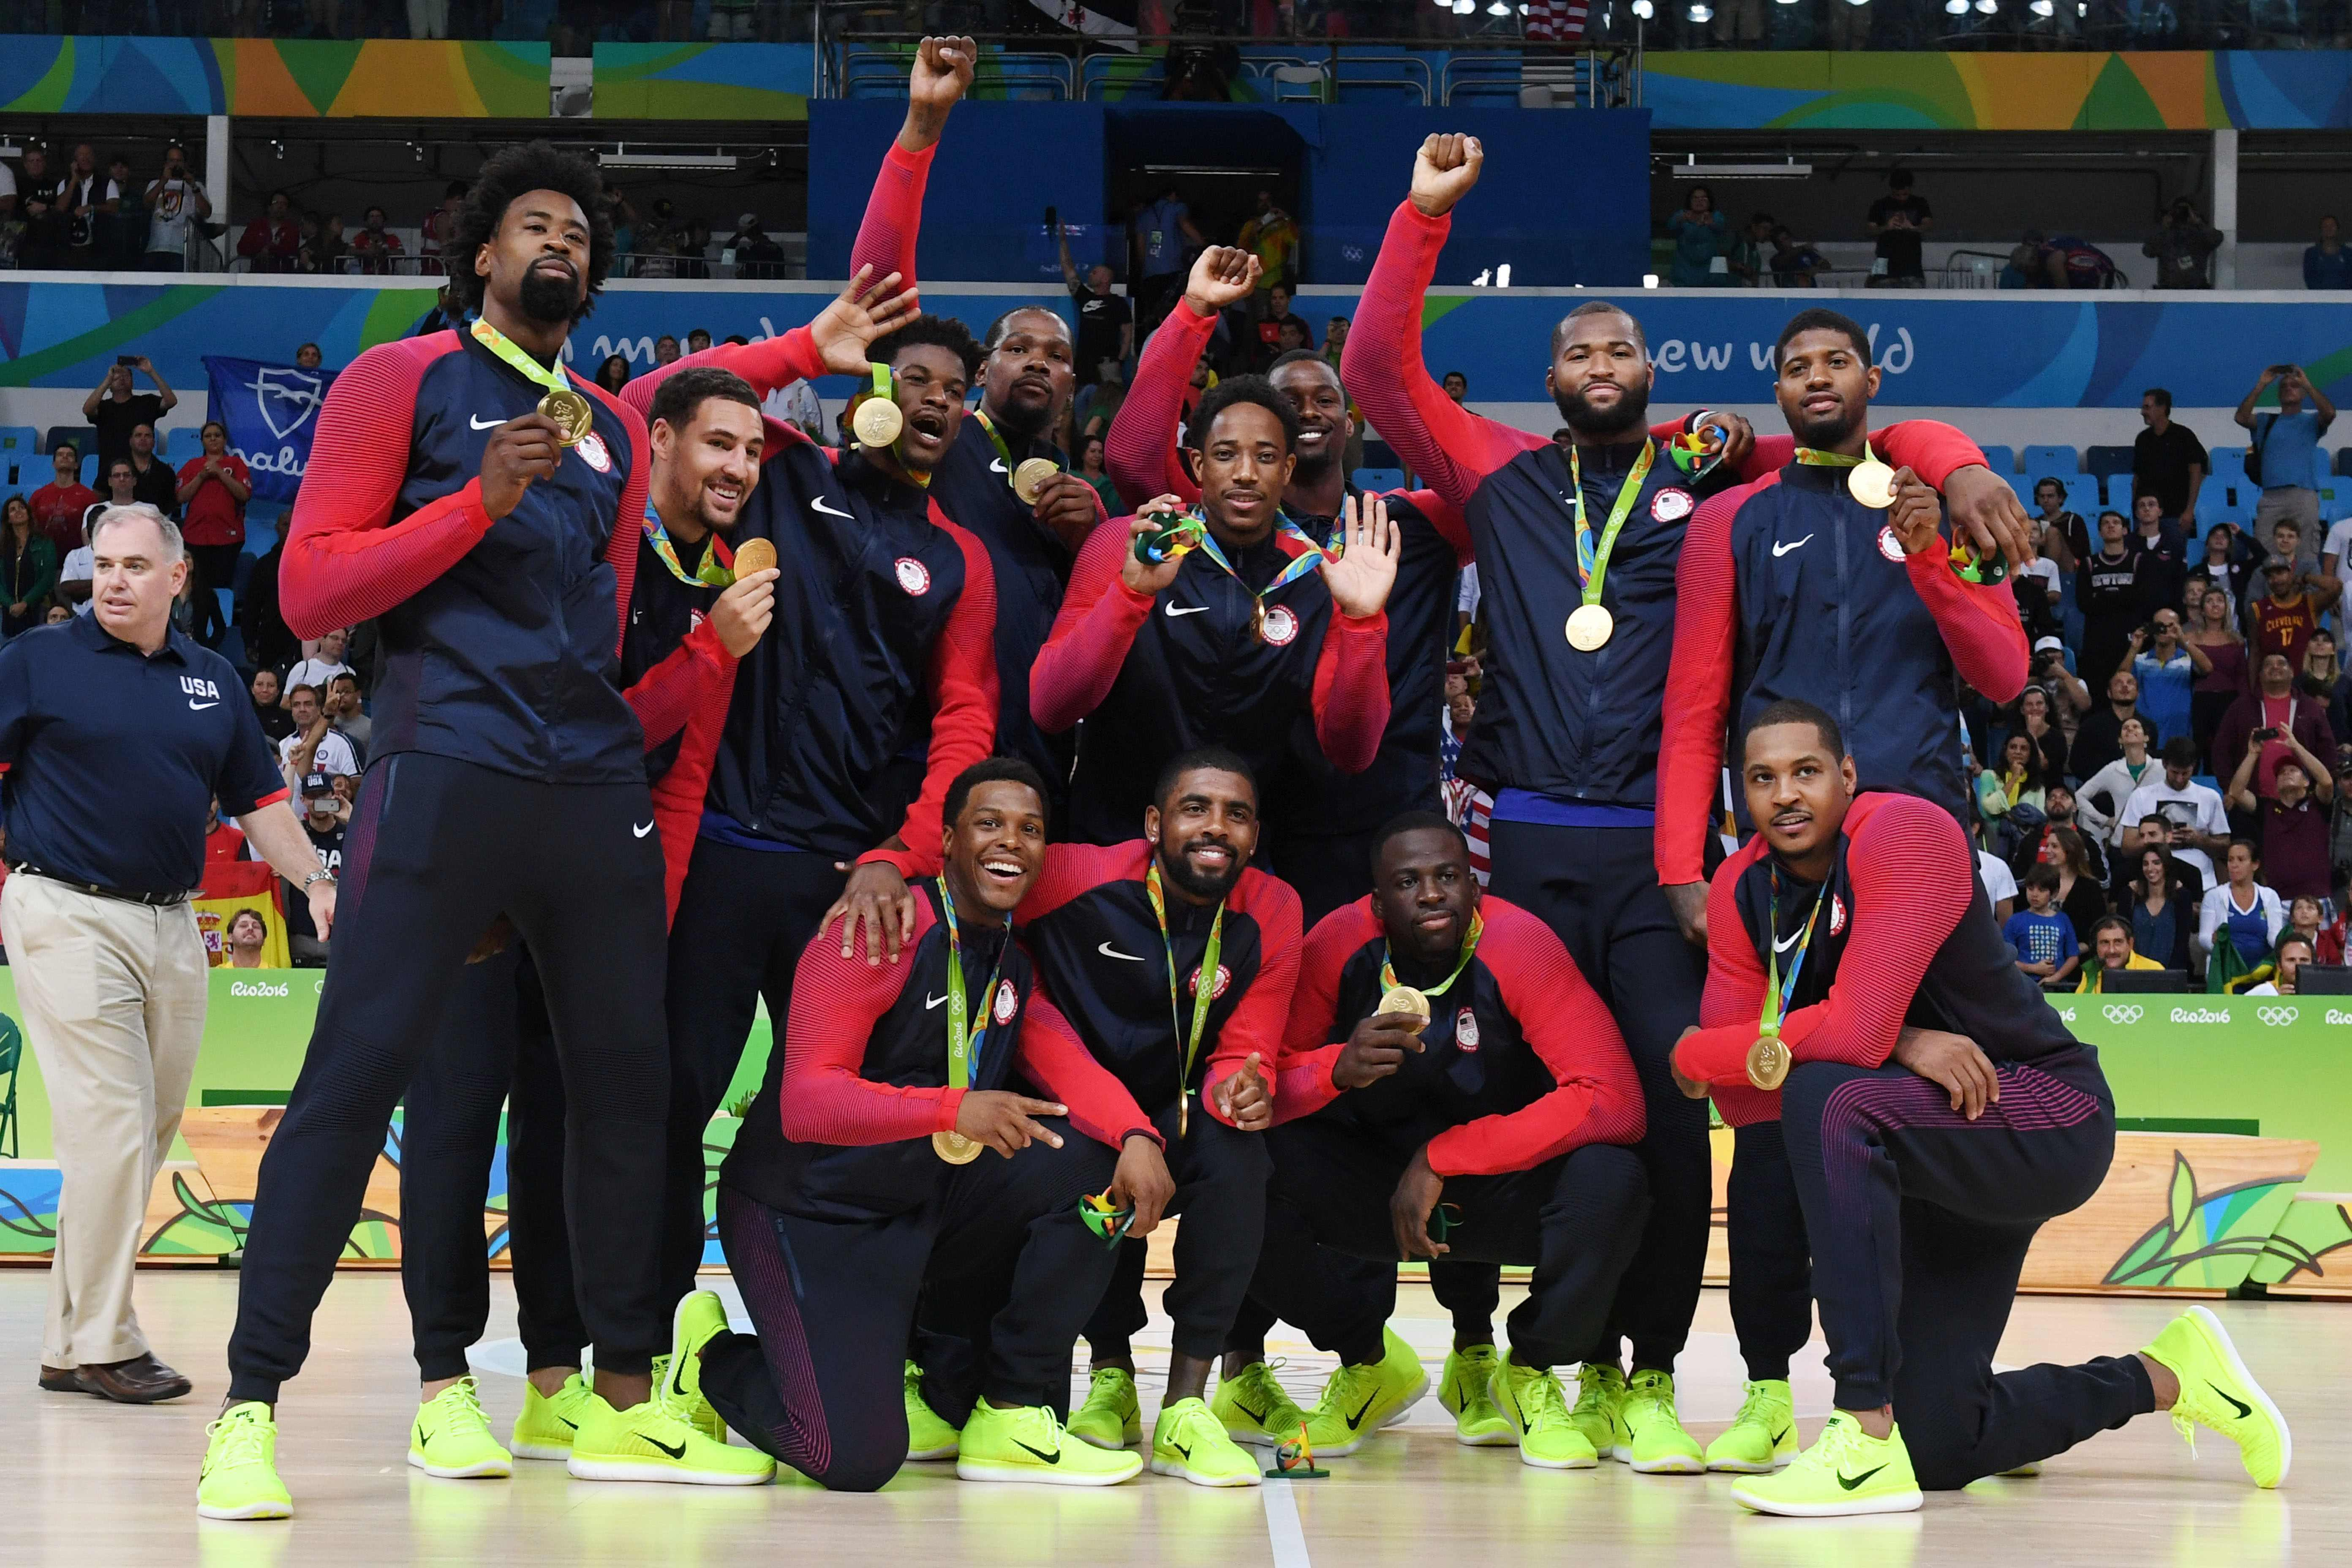 The U.S. men's basketball team members pose after winning the gold medal with a 96-66 win over Serbia in Sunday's final at 2016 Rio Olympics. |   AFP-JIJI